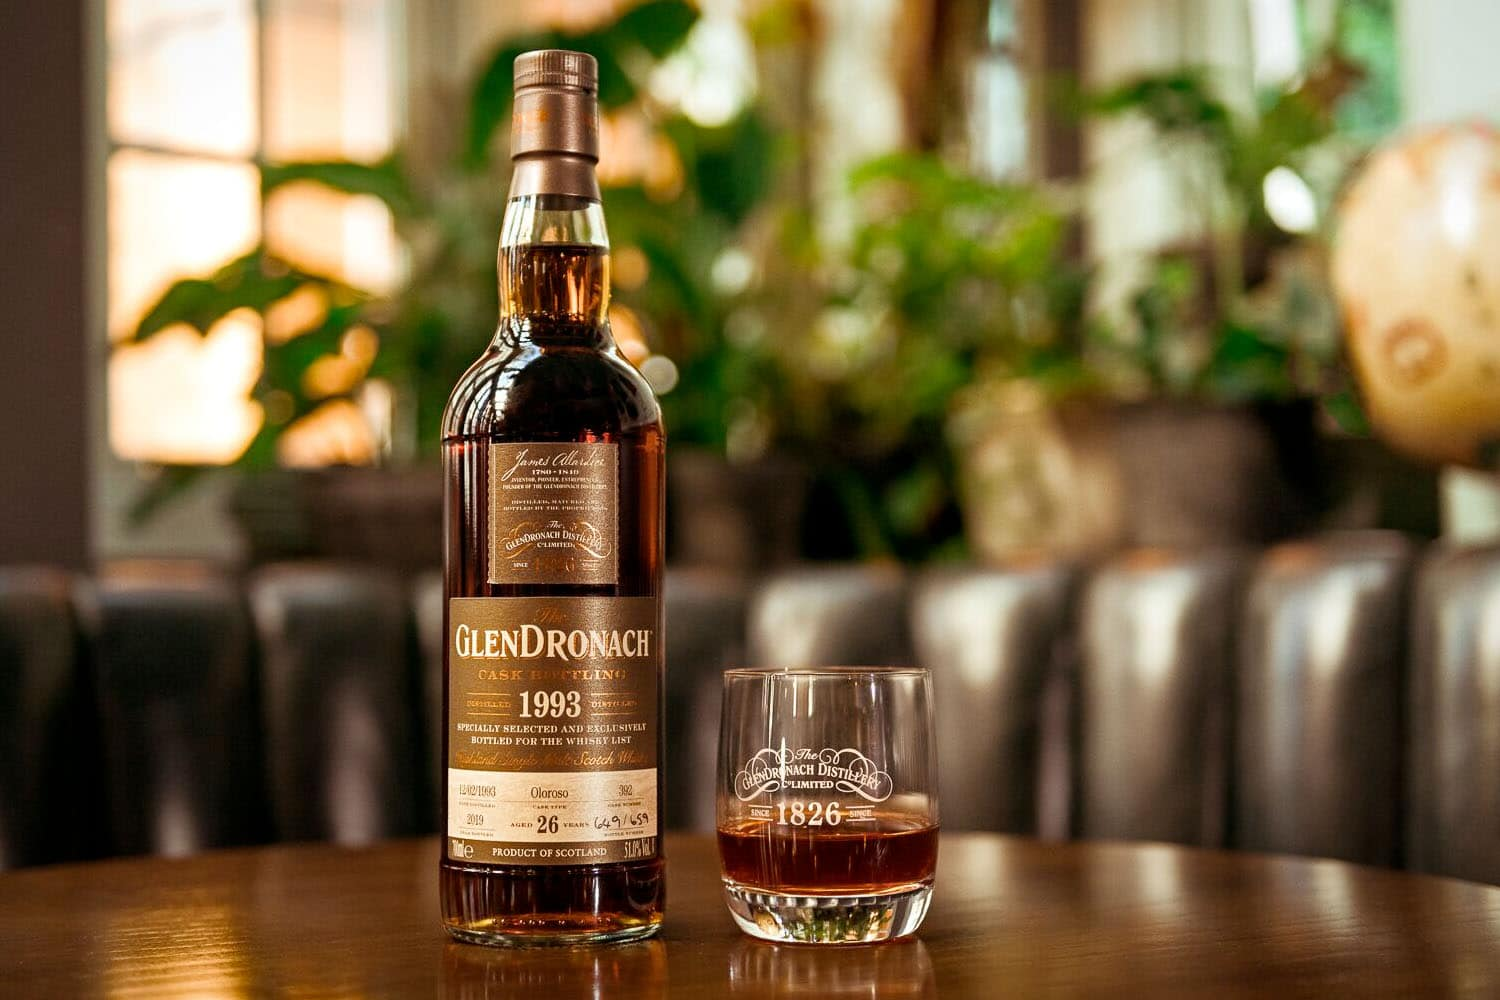 Is The GlenDronach 1993 Single Cask the Perfect Father's Day Present?